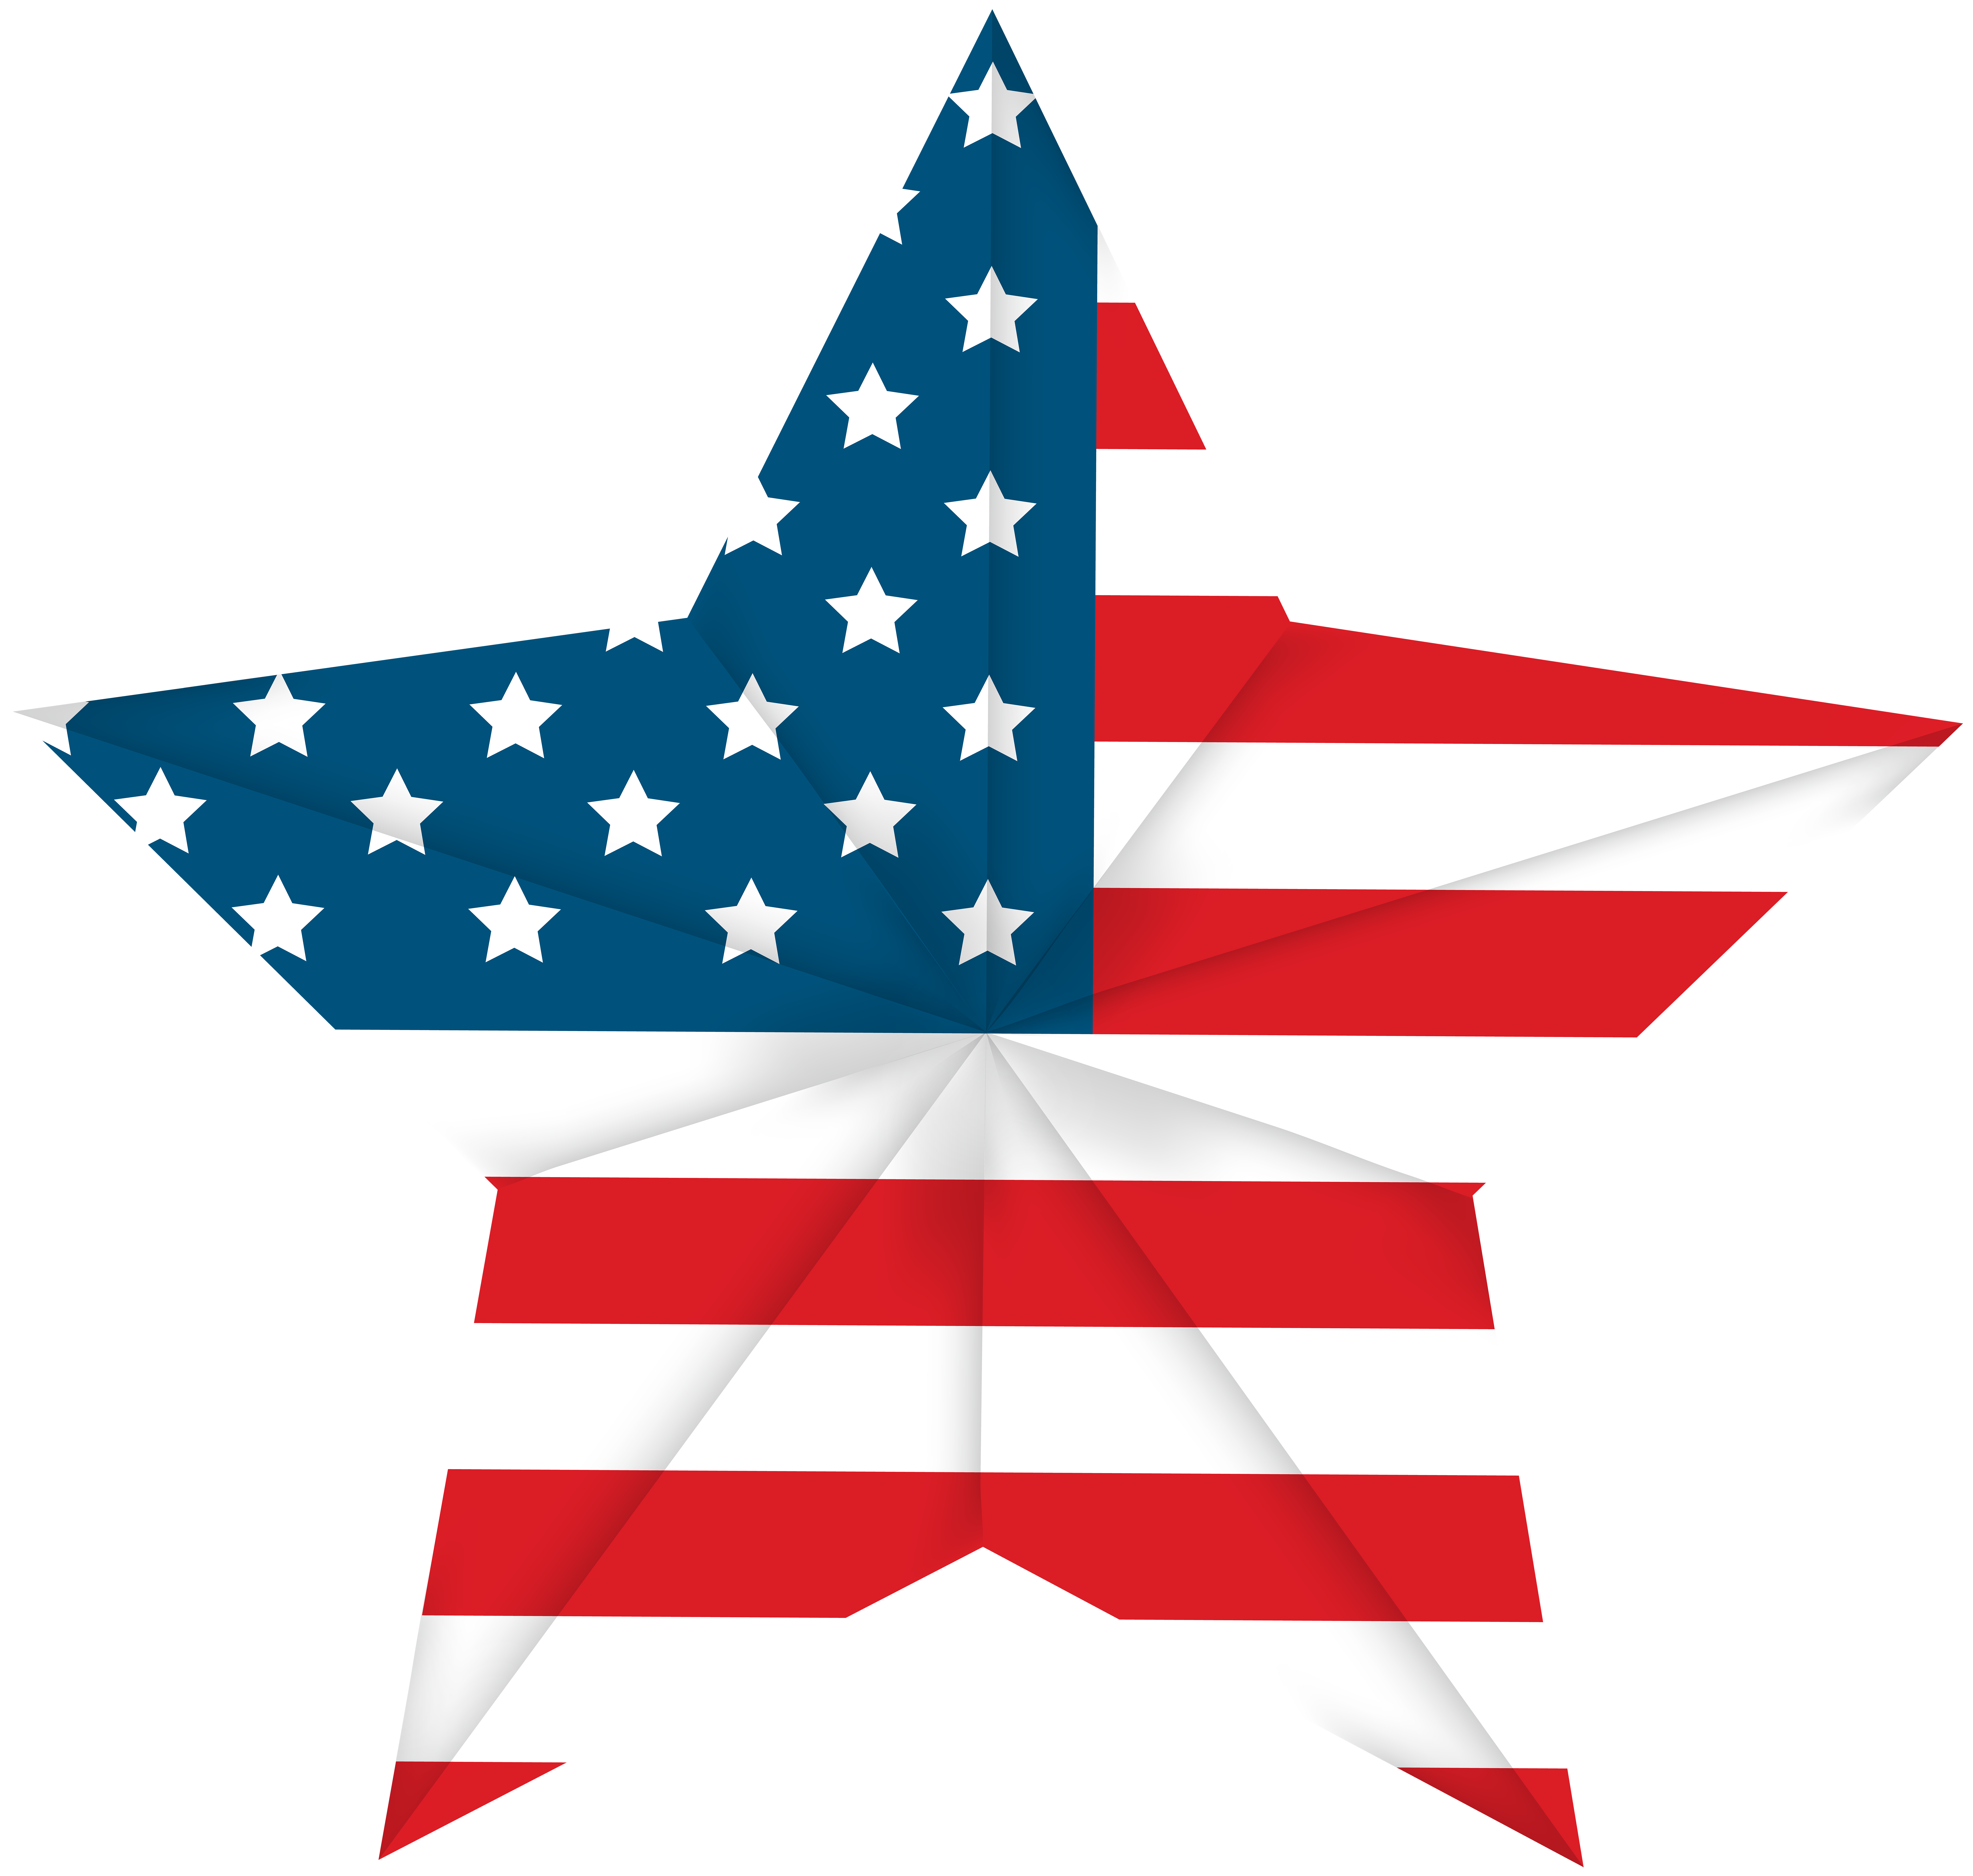 Star flag clipart black and white stock USA Star Flag PNG Clip Art Image | Gallery Yopriceville - High ... black and white stock